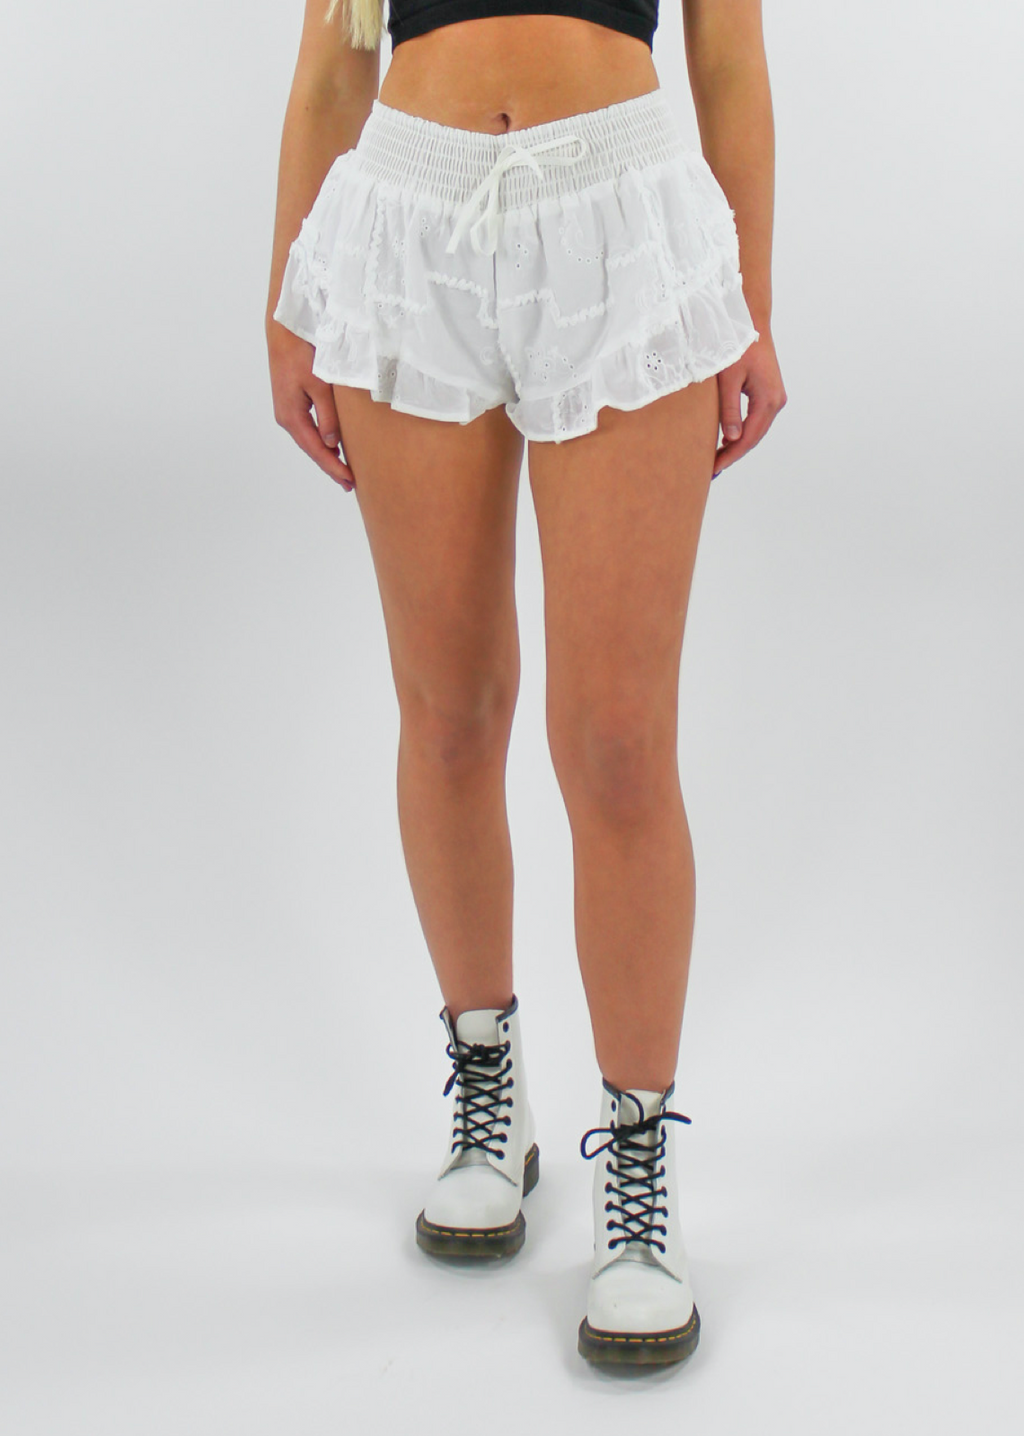 Halo Short ★ White - Rock N Rags